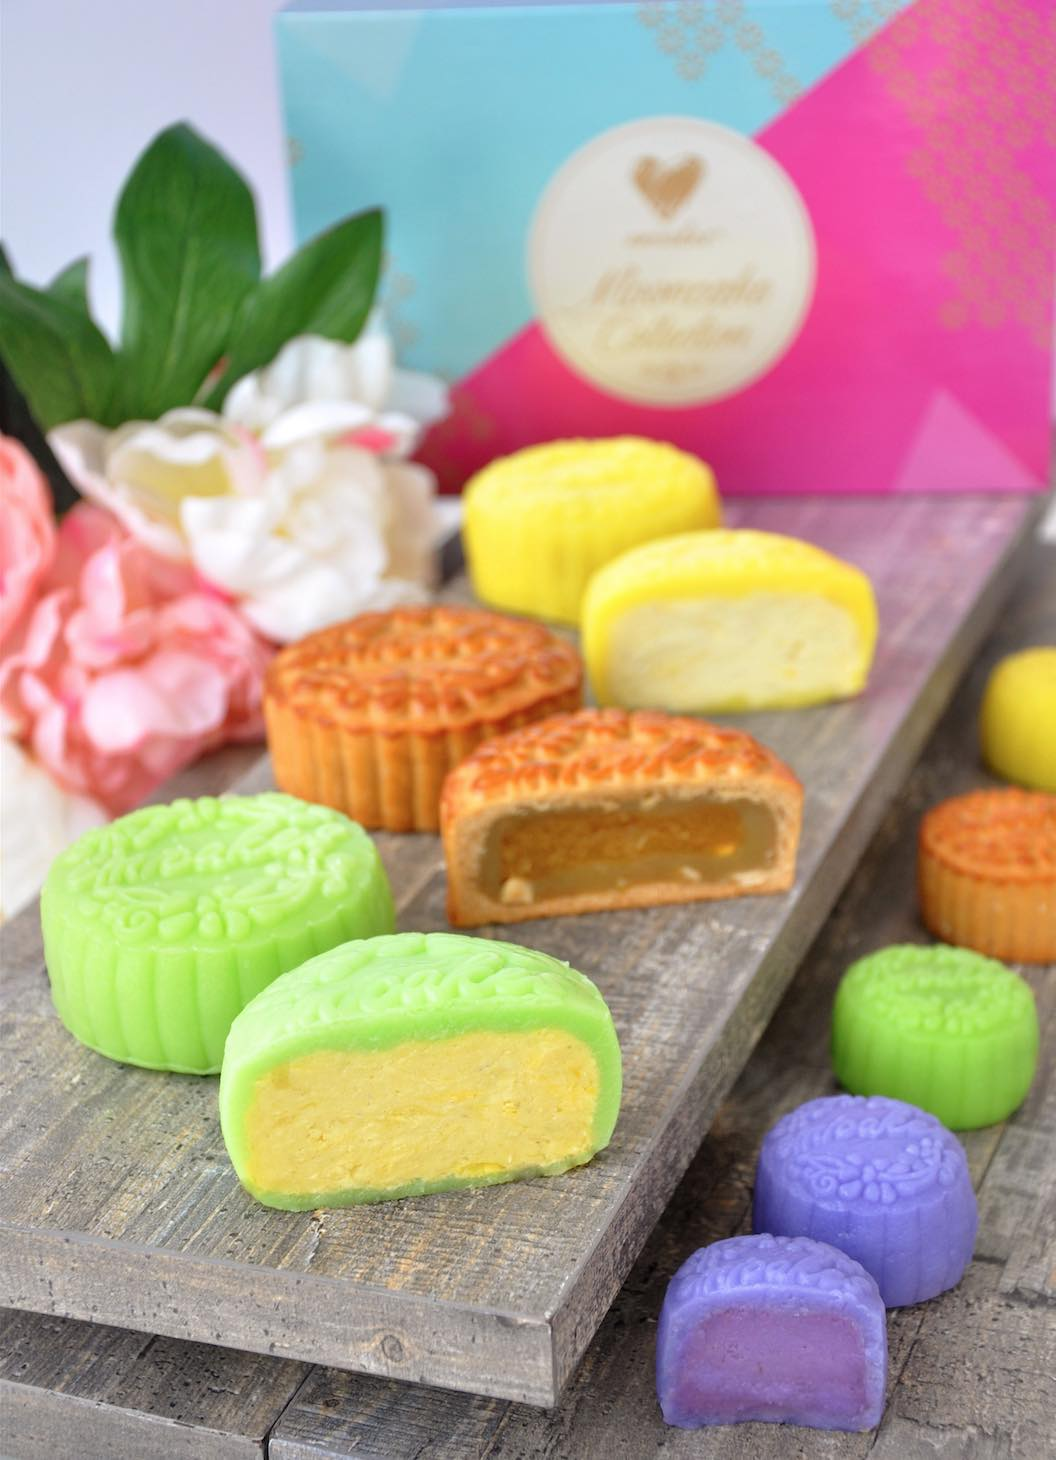 Emi Cakes Mooncakes Traditional and Snow Skin - AspirantSG